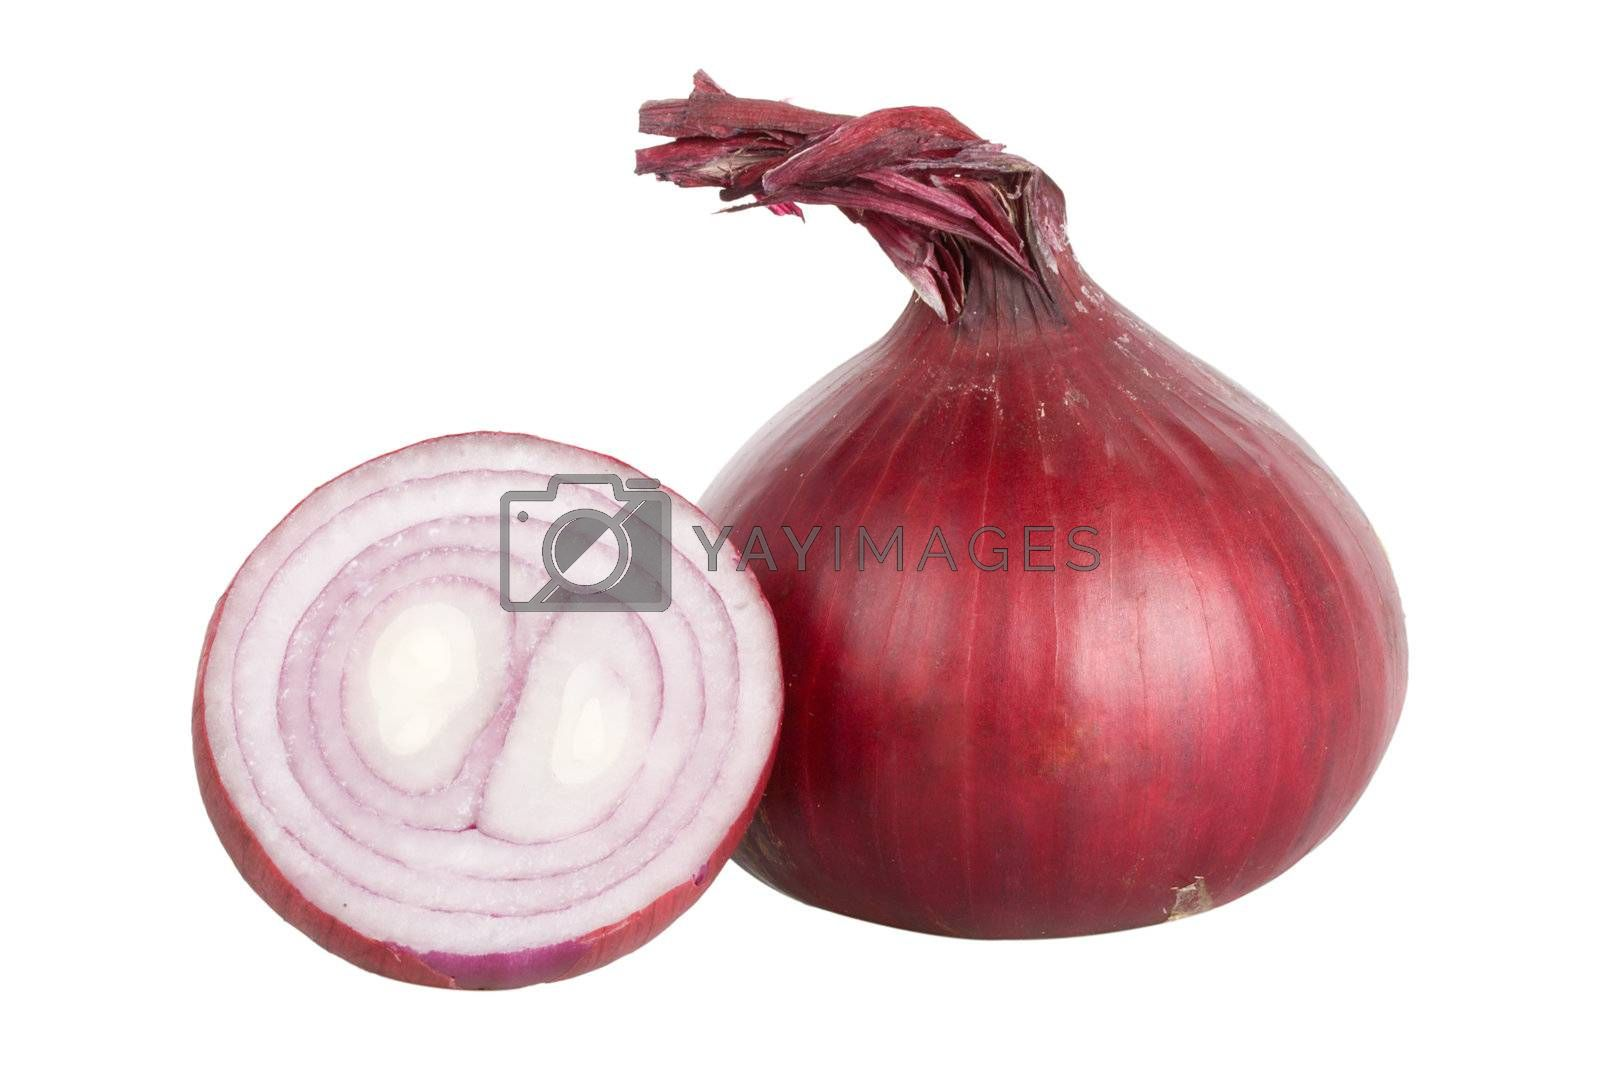 red onion full and peace, isolated on white